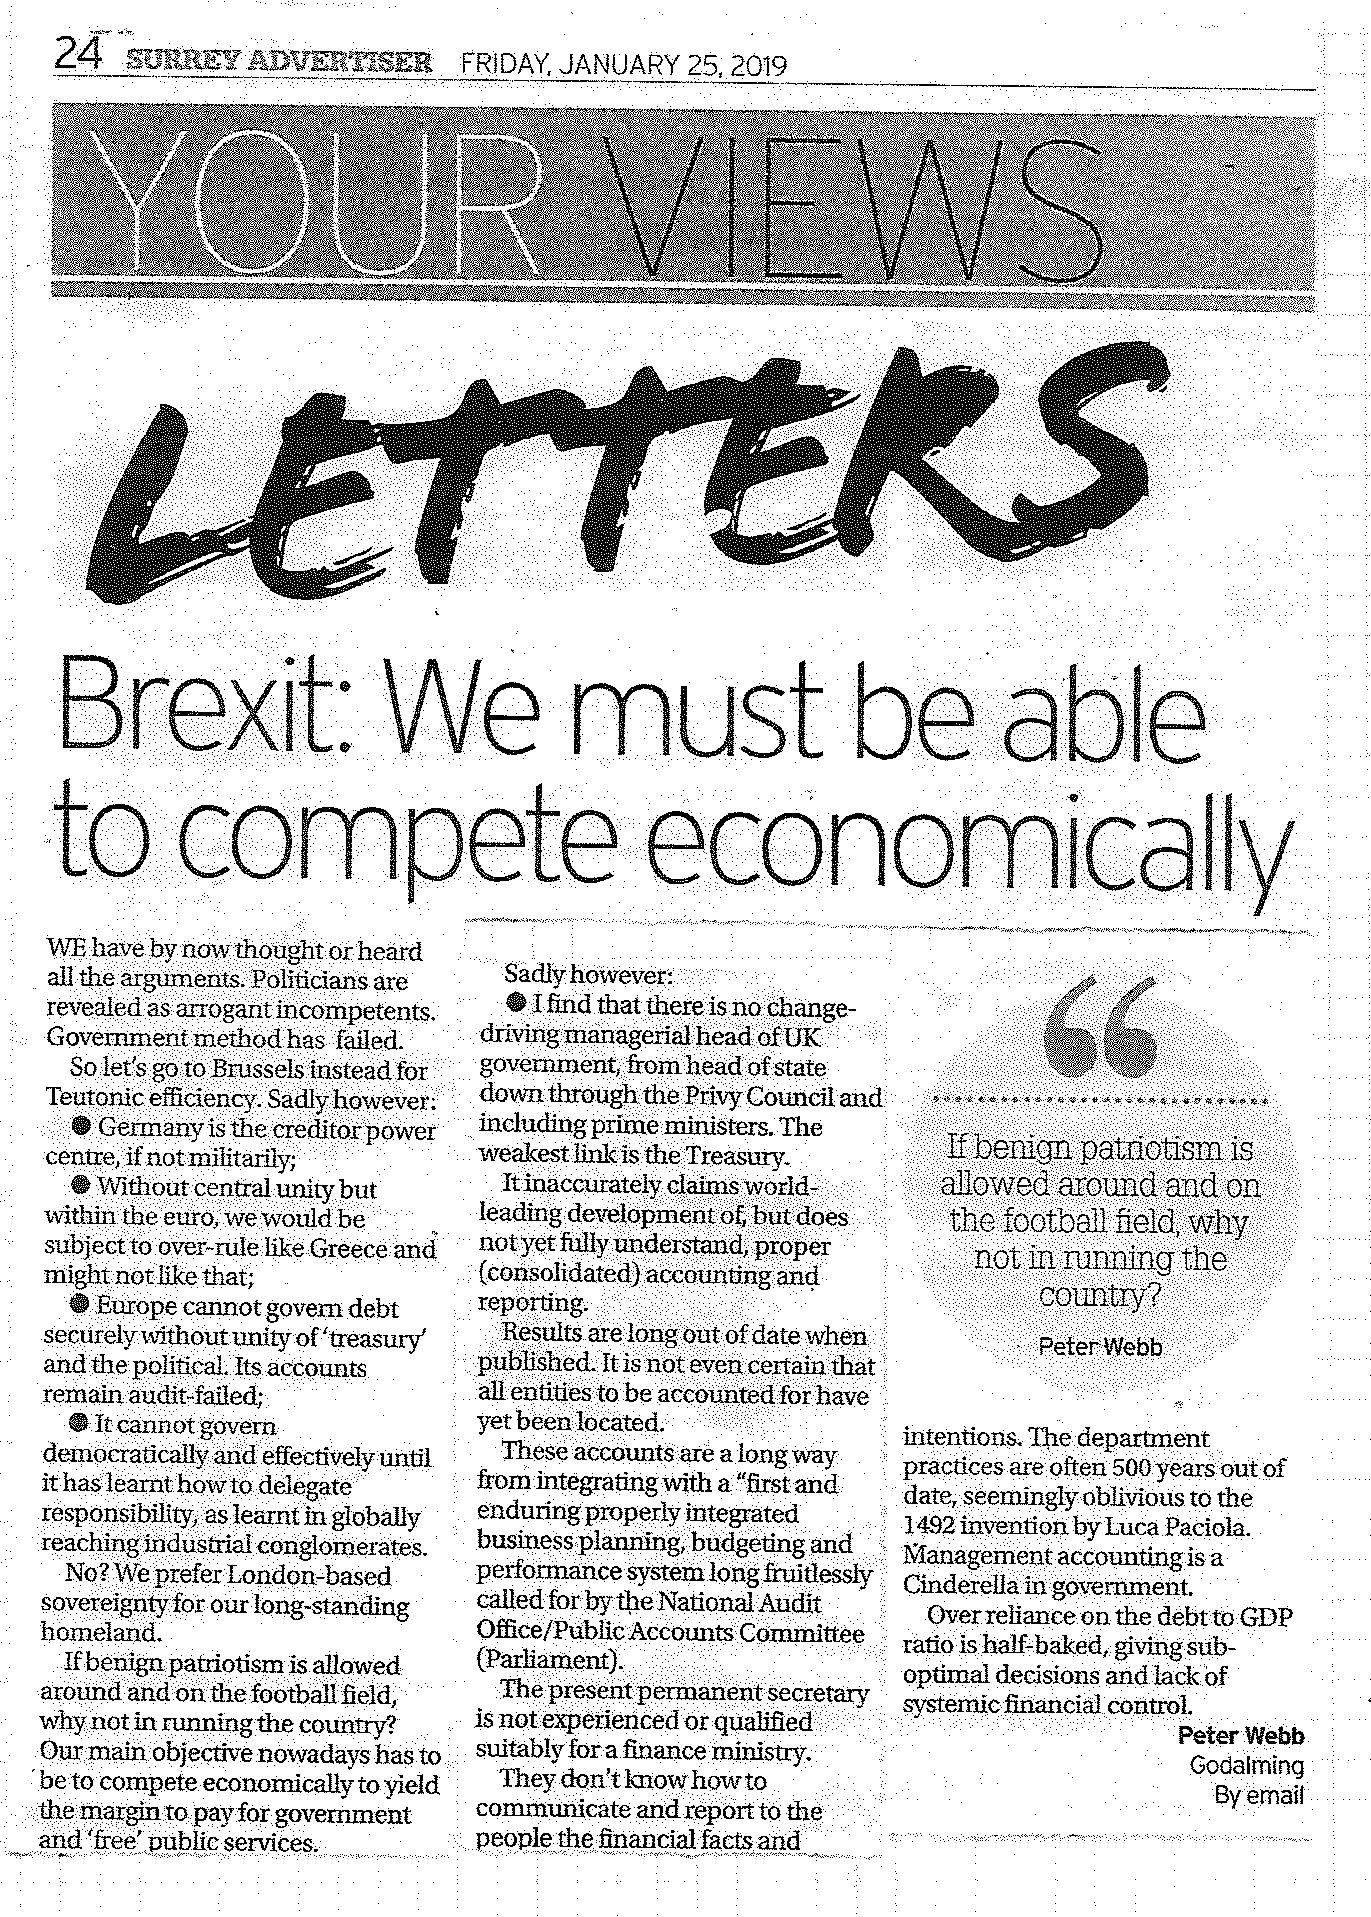 Brexit-we must compete economically